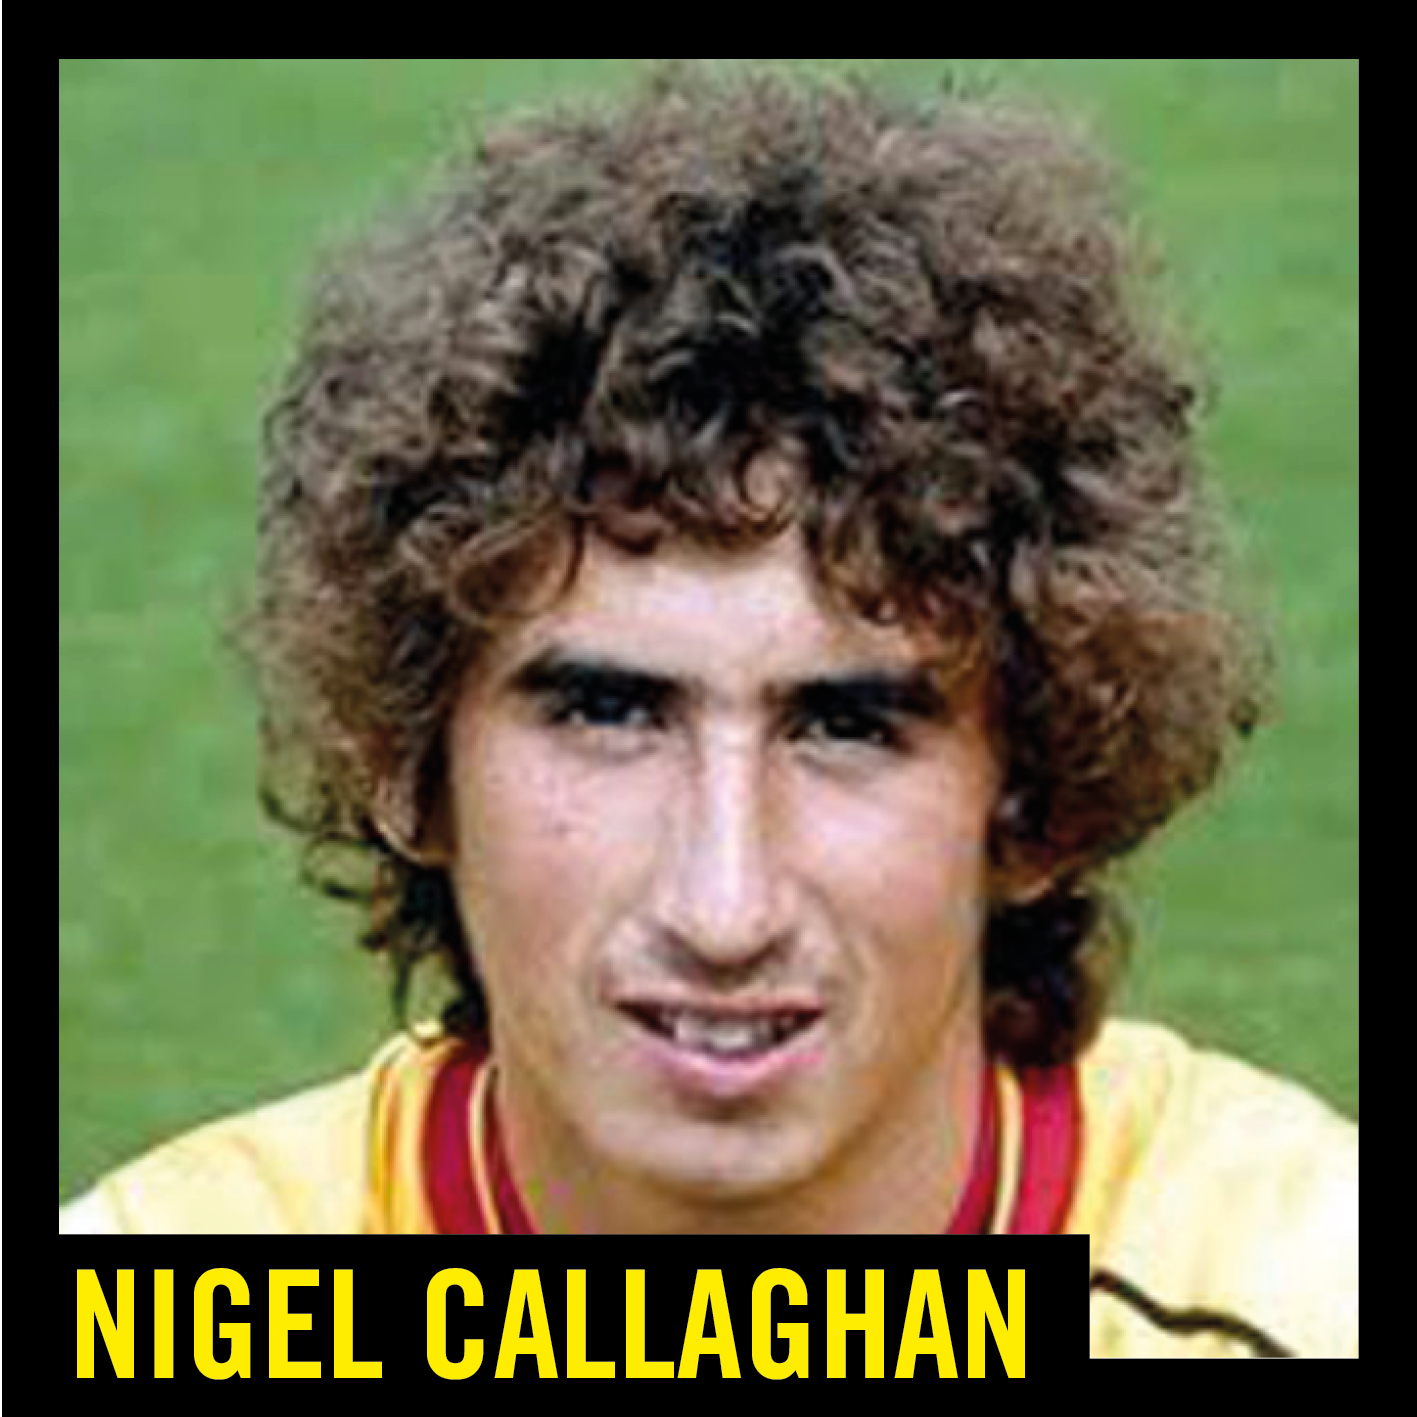 Read the full, in-depth Enjoy the Game interview with Nigel Callaghan.